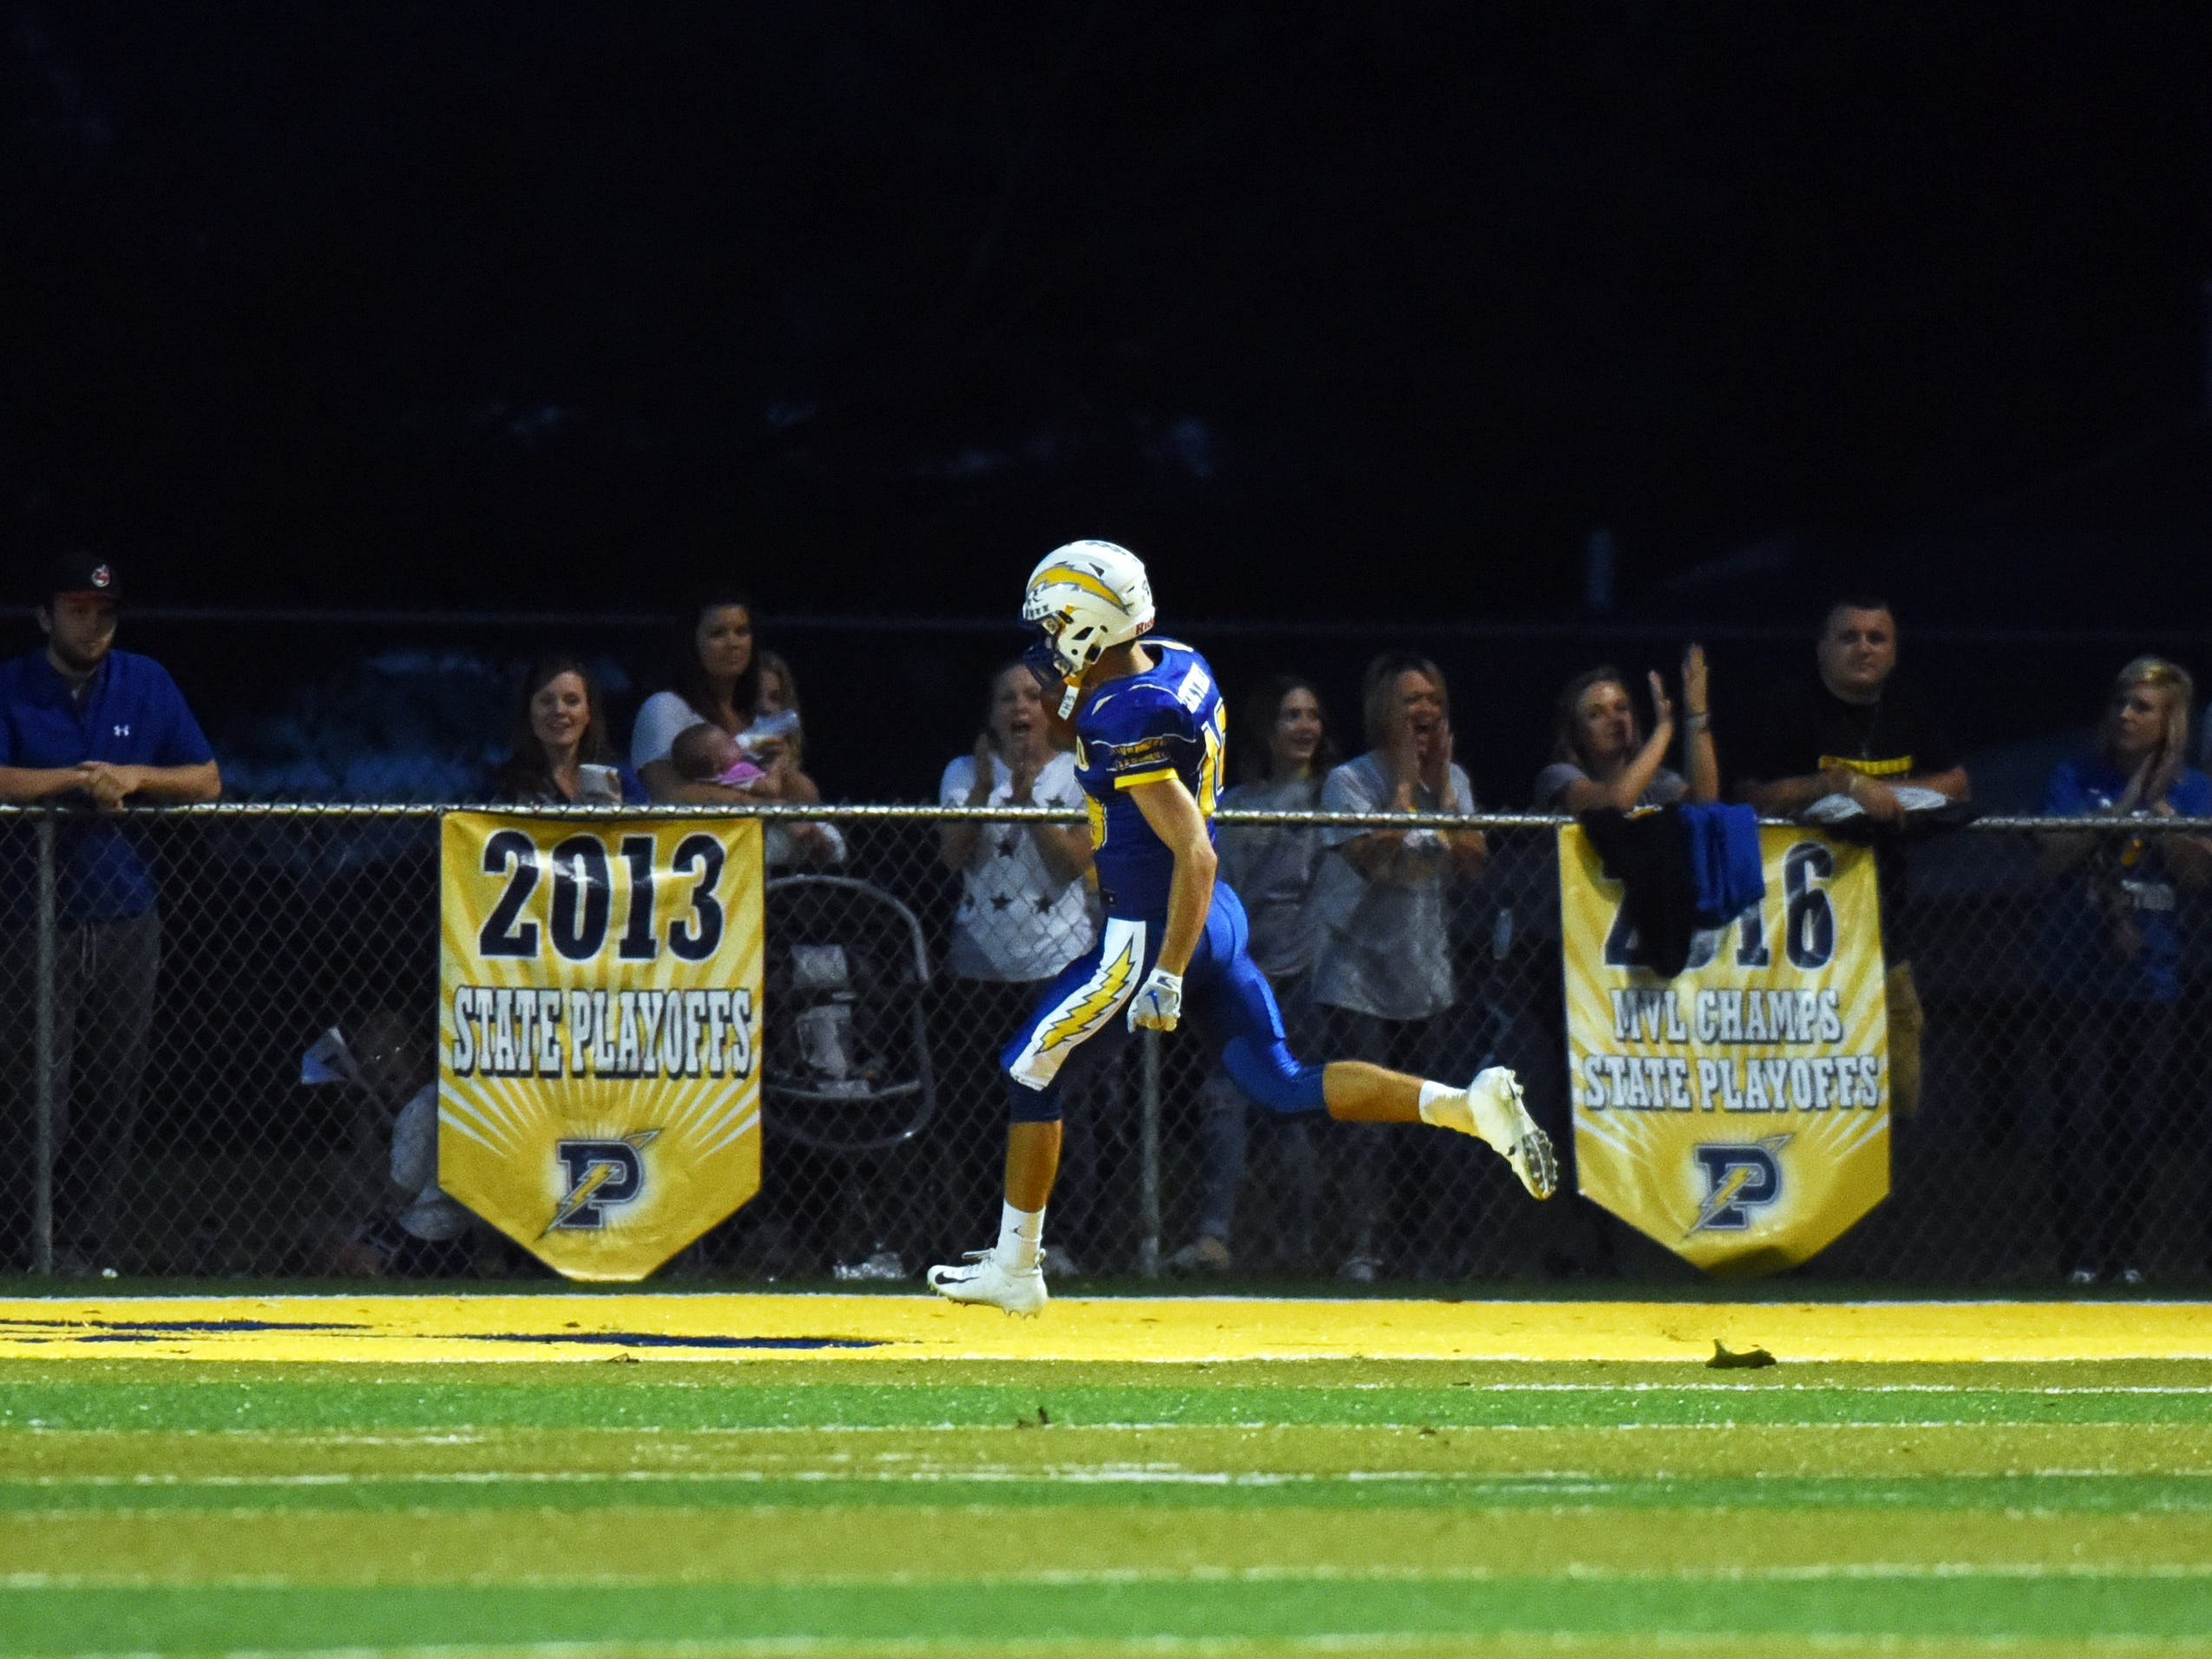 Carson Stottsberry runs into the end zone during a 78-yard touchdown reception on Friday night at Sam Hatfield Stadium.